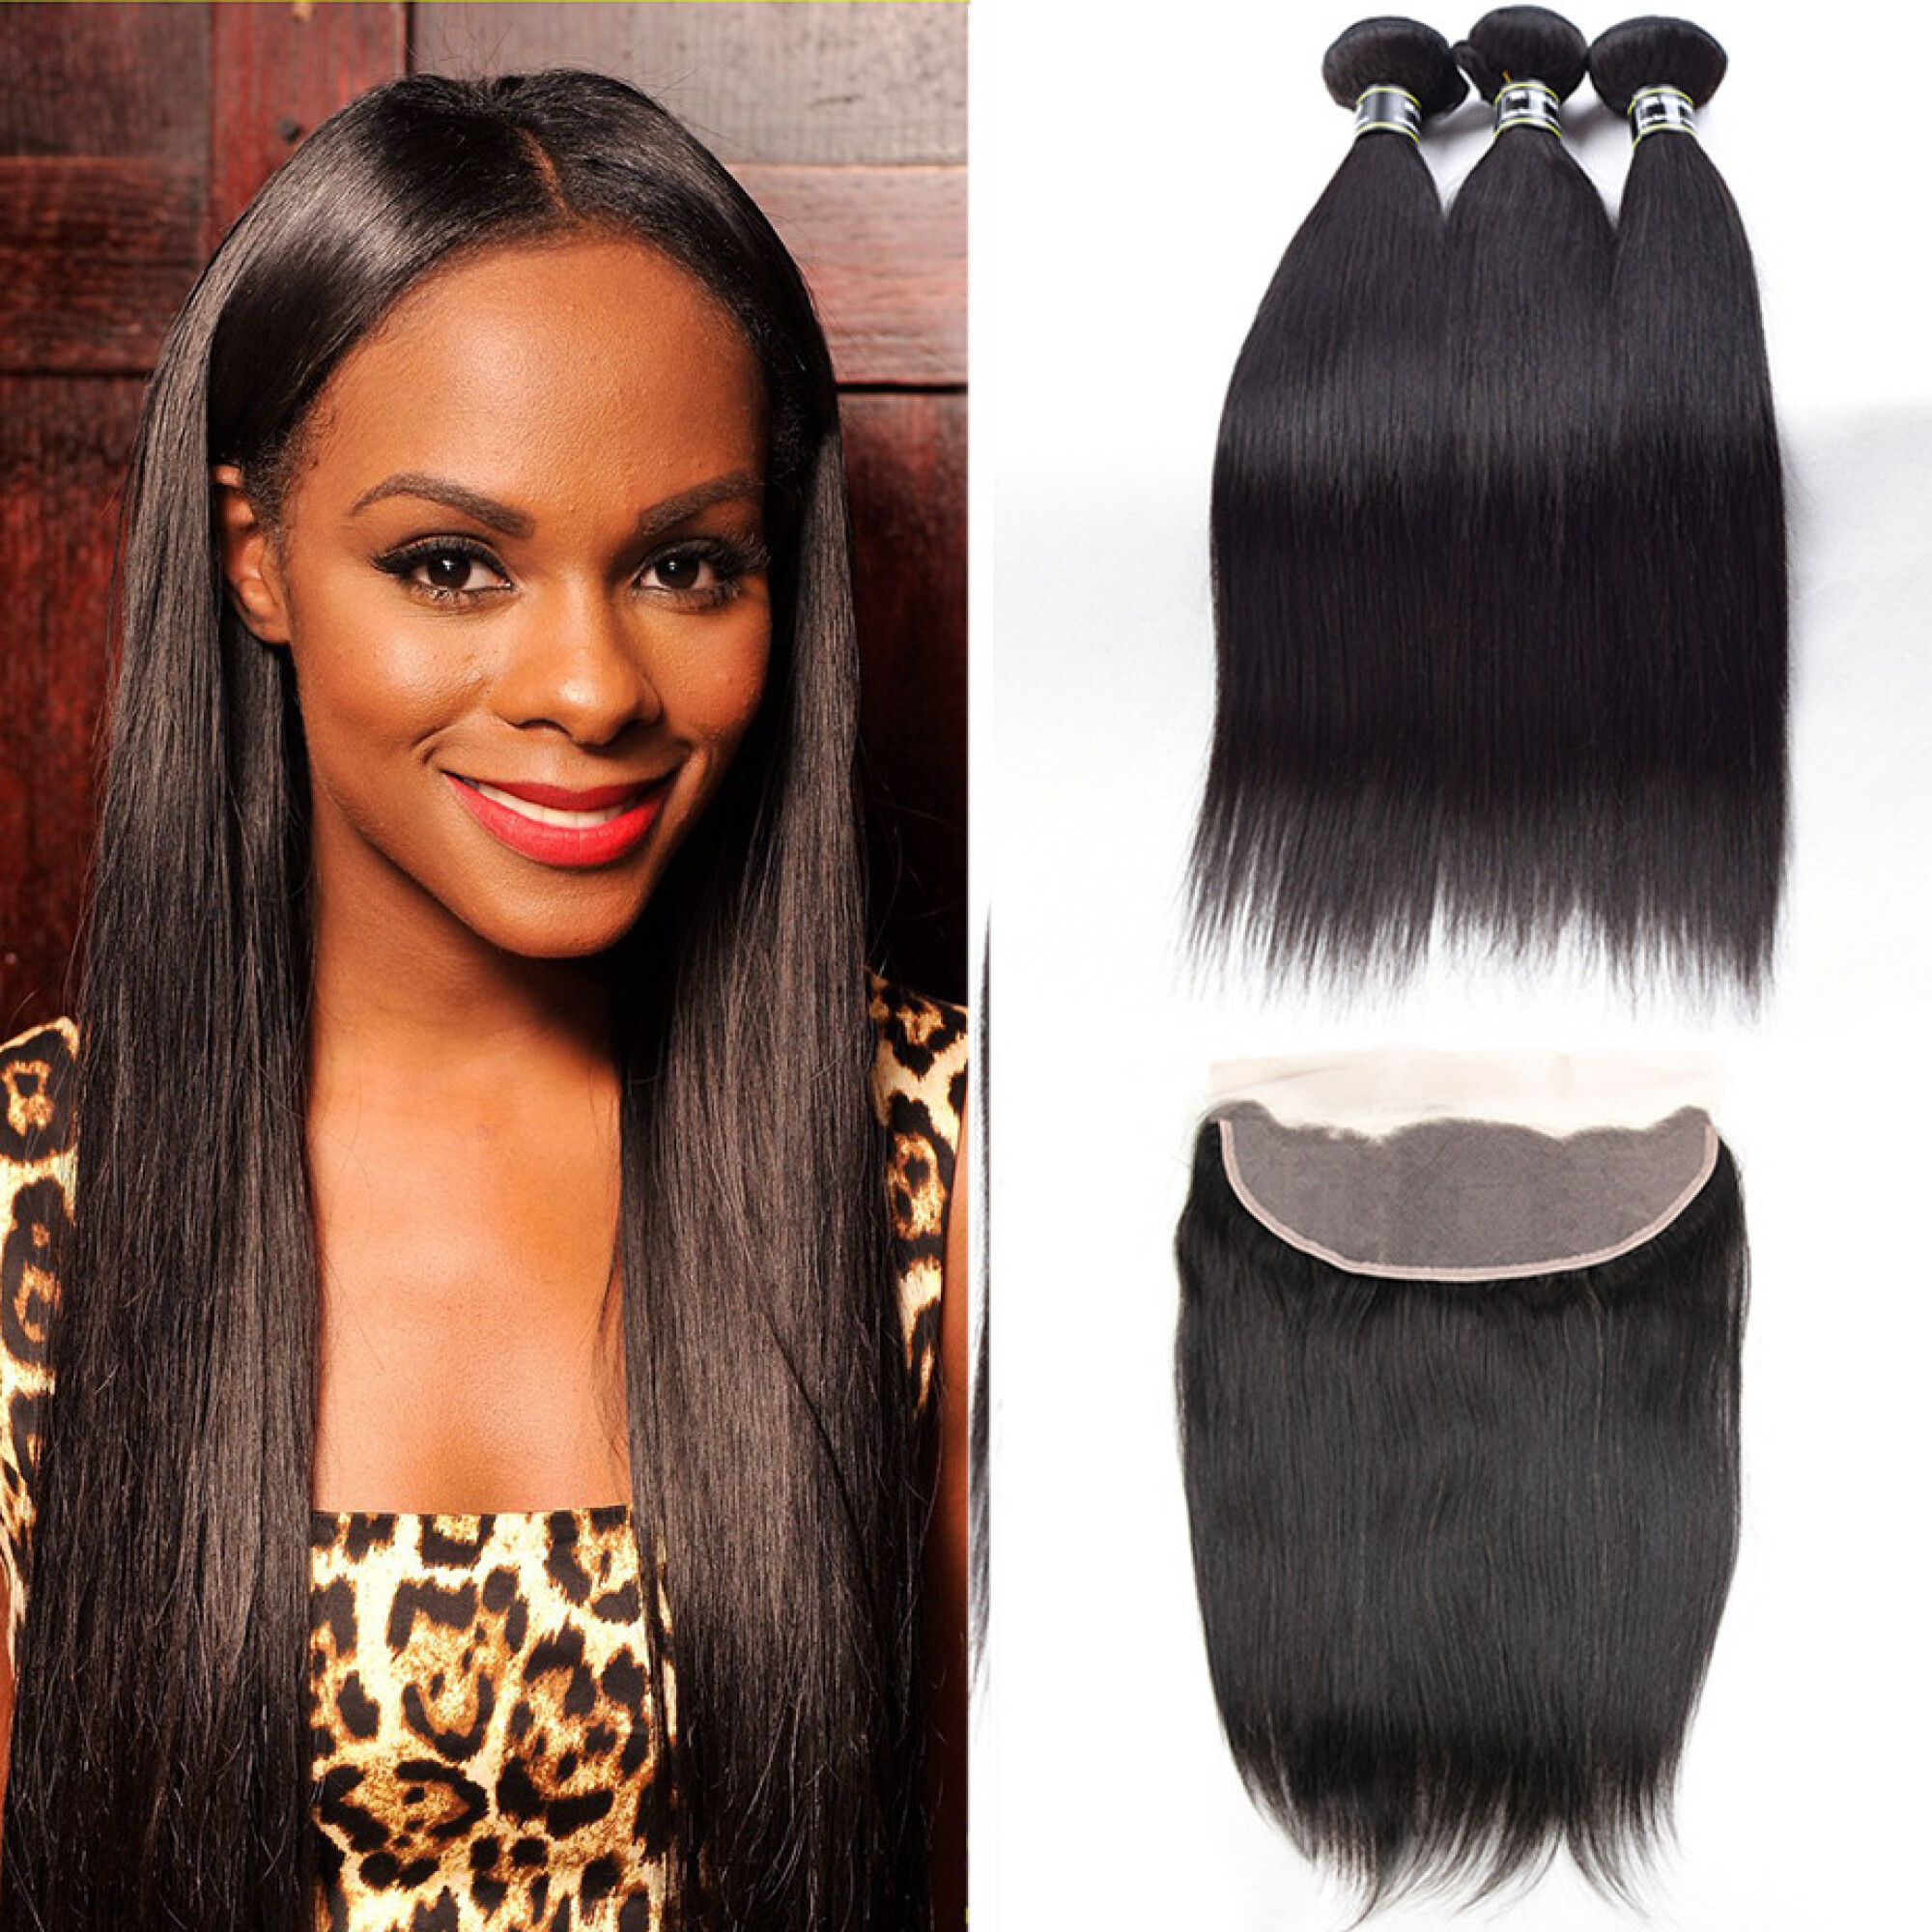 """Amazing Star Peruvian Virgin Straight Hair Bundles with Closure Free Part Human Hair Weave, 16""""18""""20"""" with 14"""""""